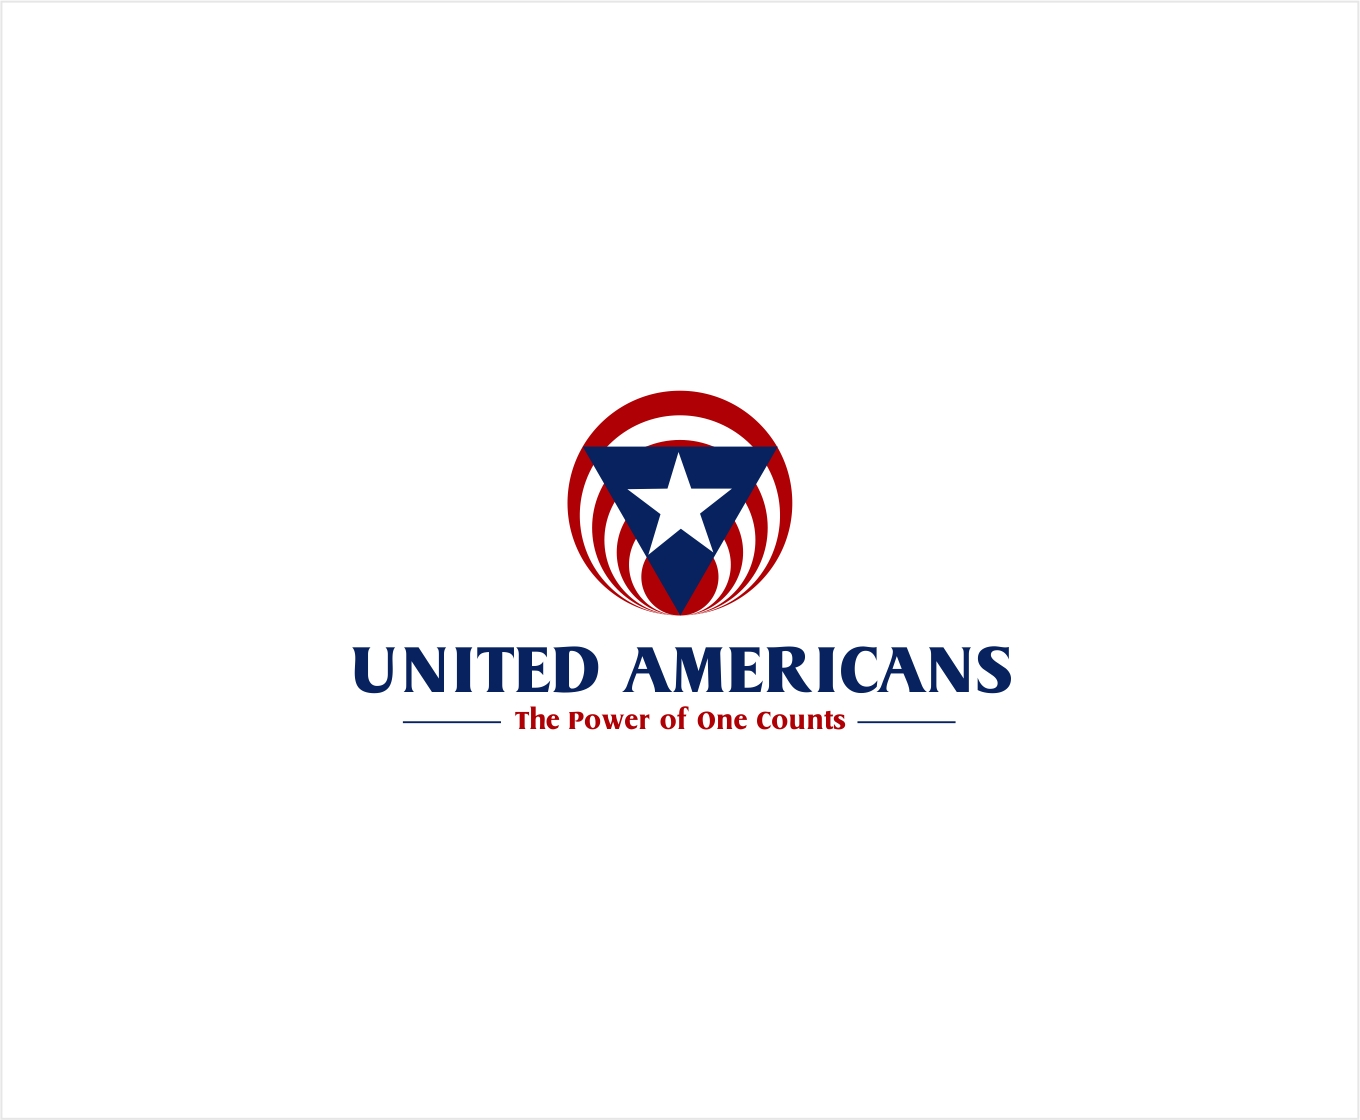 Logo Design by haidu - Entry No. 153 in the Logo Design Contest Creative Logo Design for United Americans.